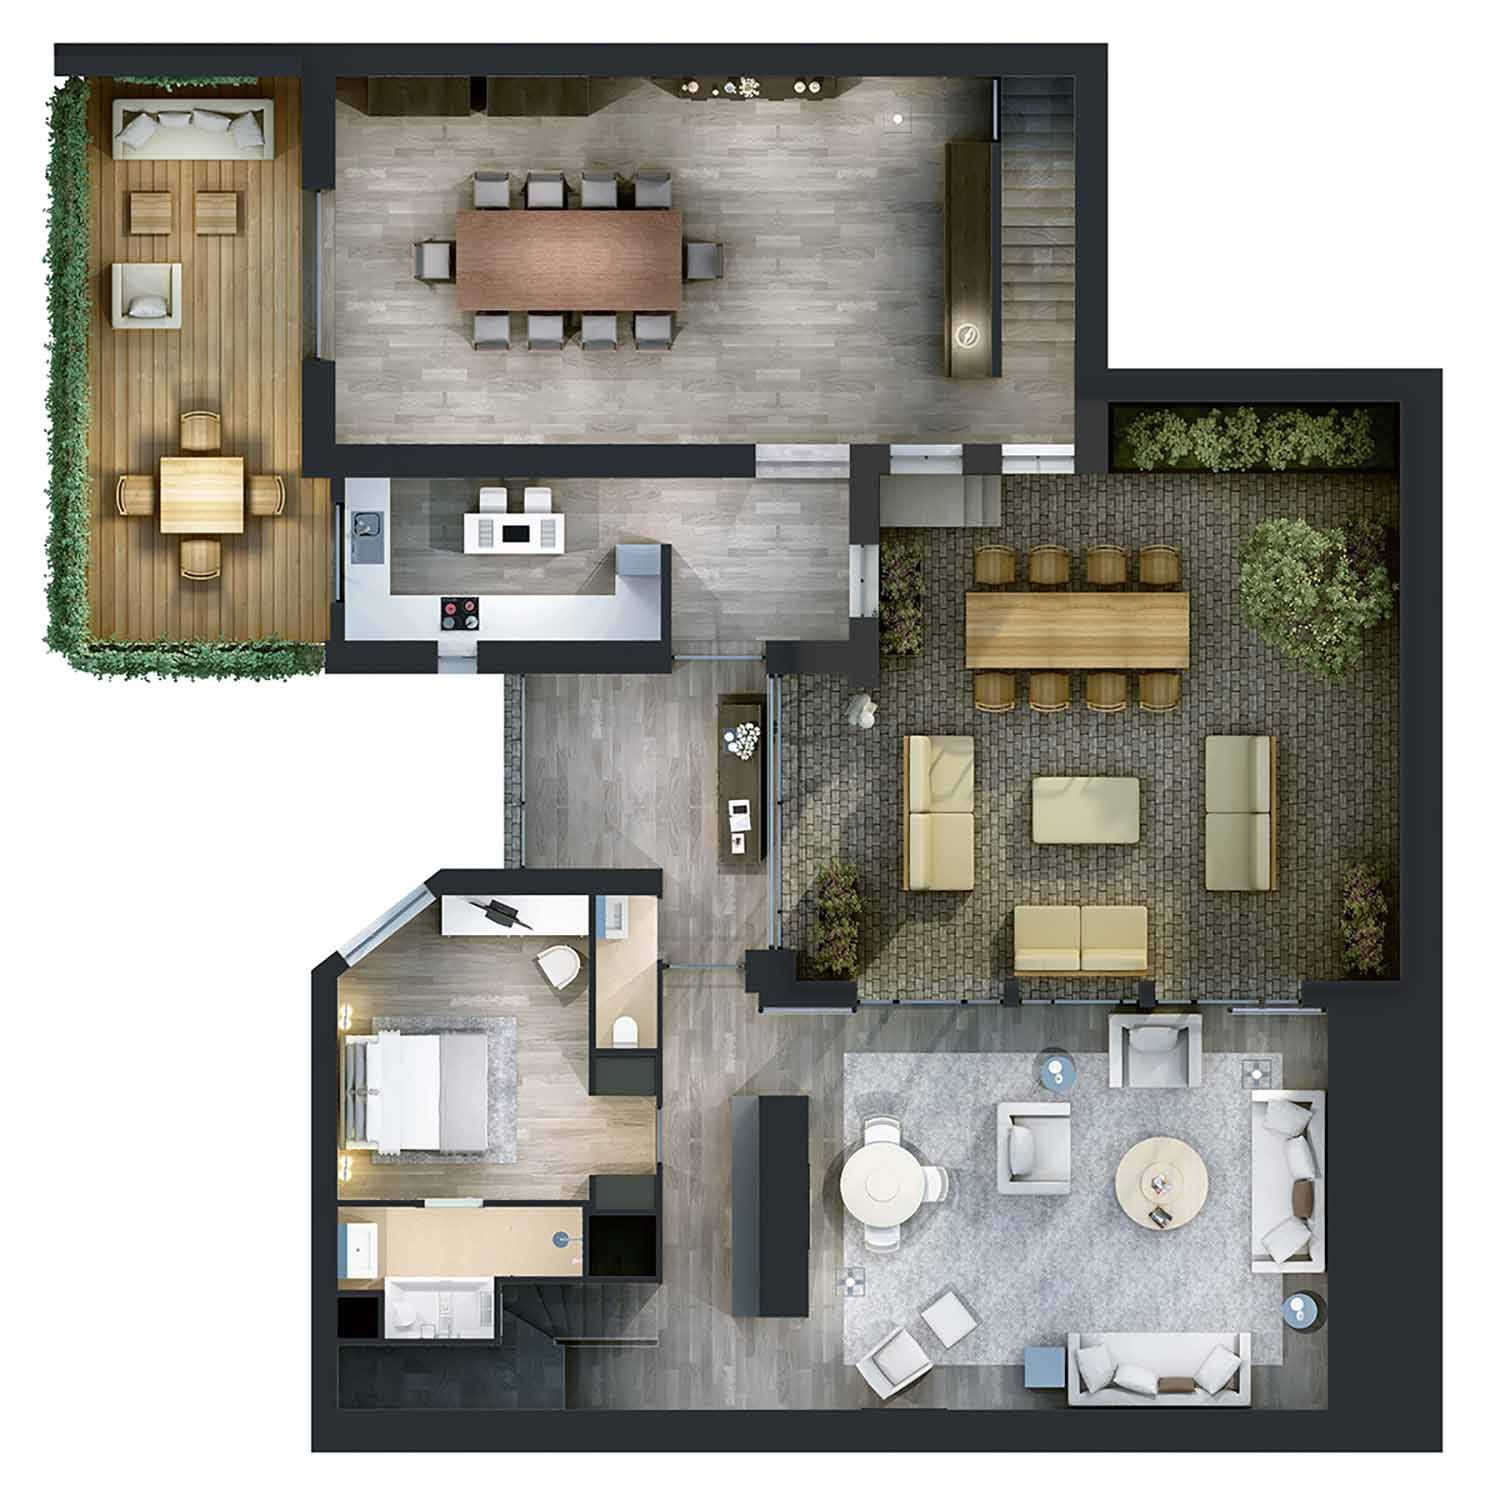 Plan 3d de vente pour l 39 am nagement d 39 une villa for Amenagement interieur 3d